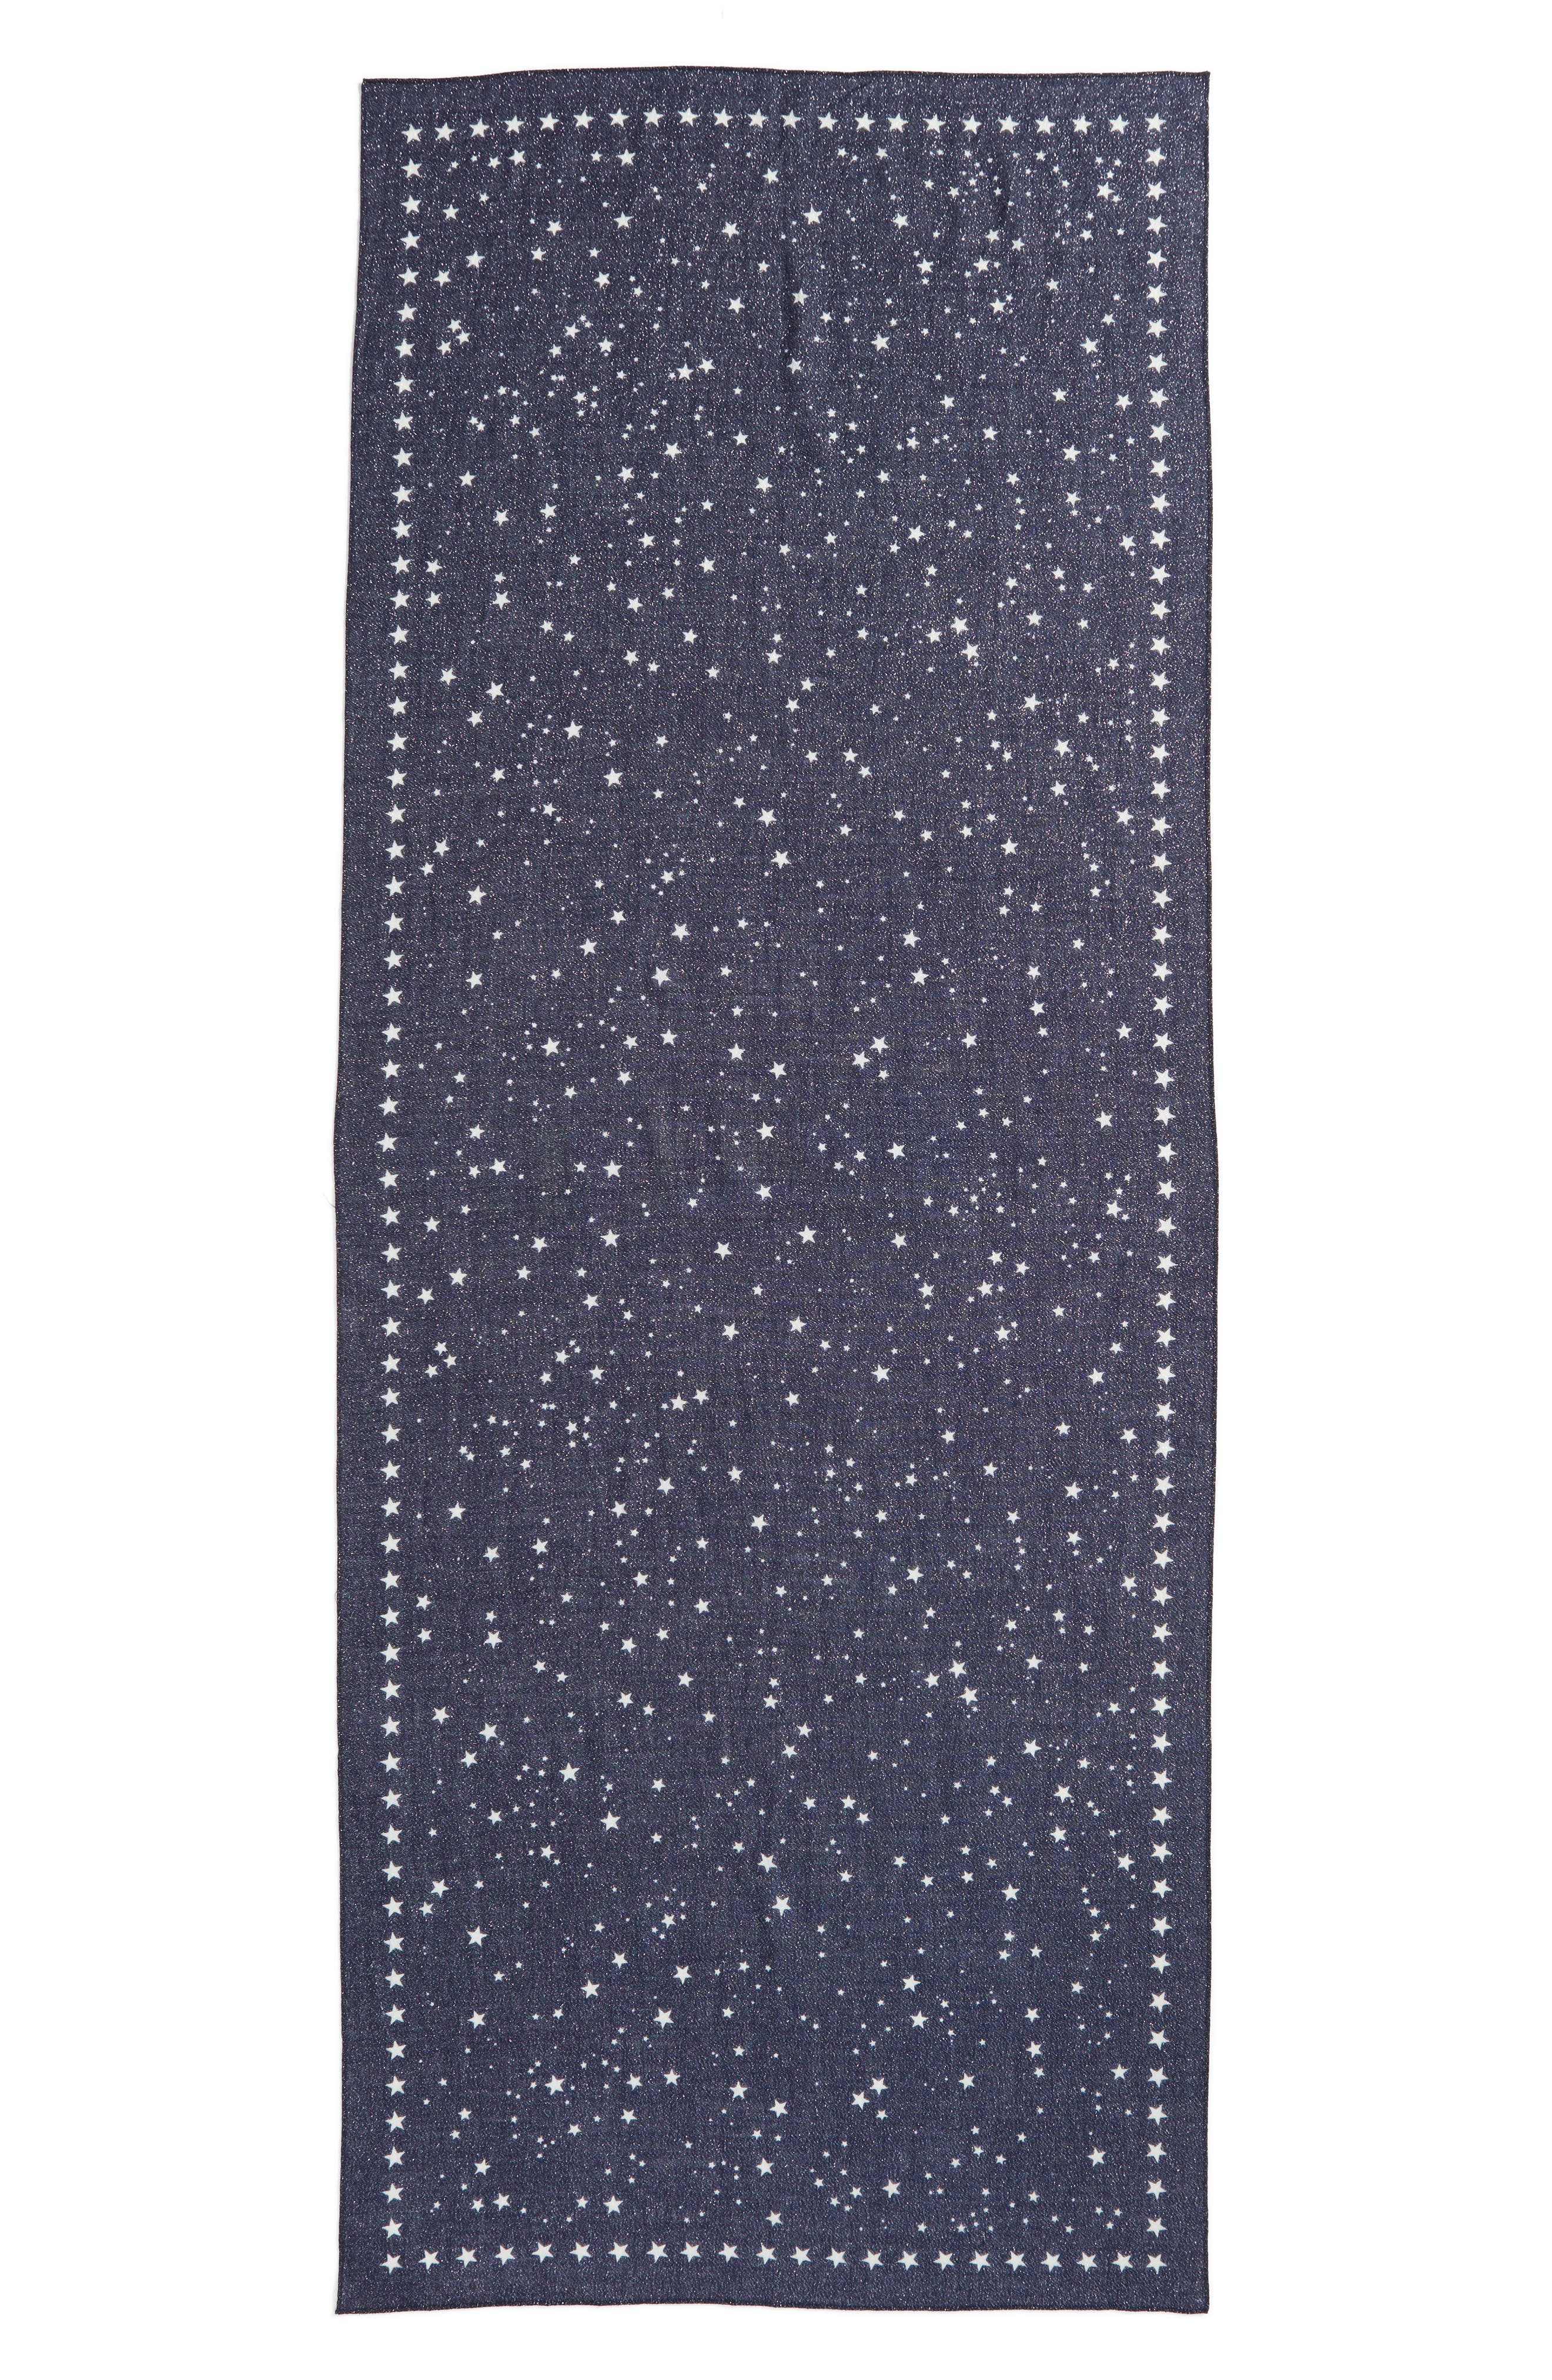 night sky wool blend scarf,                             Alternate thumbnail 3, color,